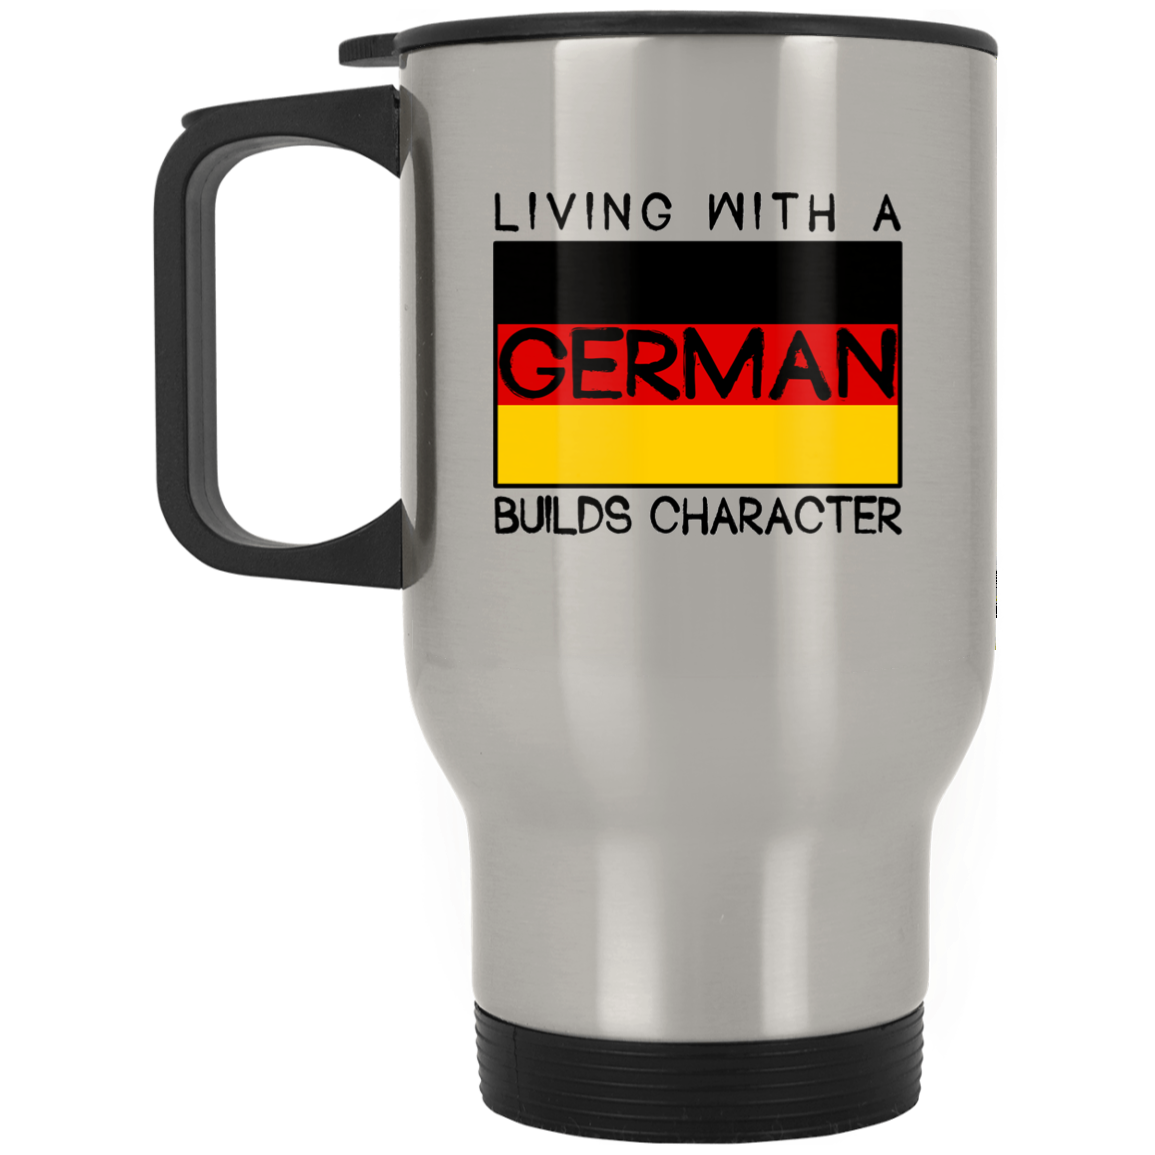 Mug Living with a German builds character 99promocode